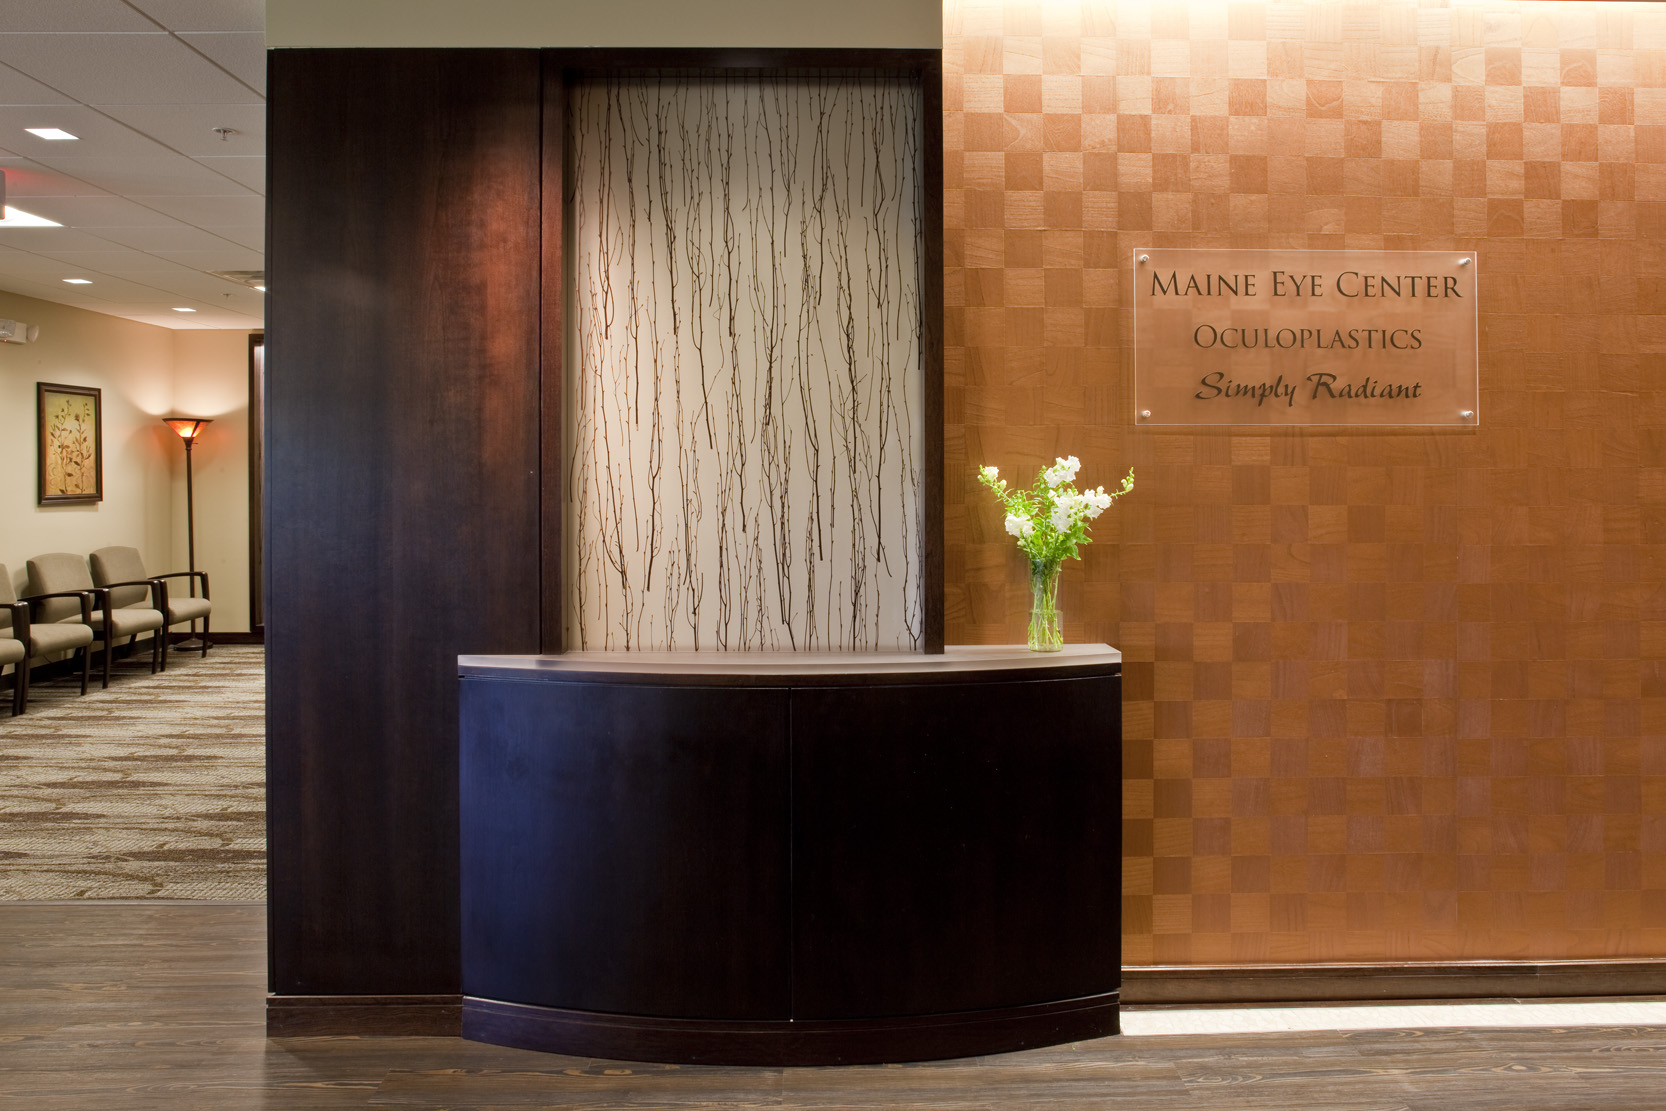 The entry to the facility sets a tone with high-end finishes and a hospitality aesthetic. To the left is Oculoplastics; to the right, Simply Radiant.